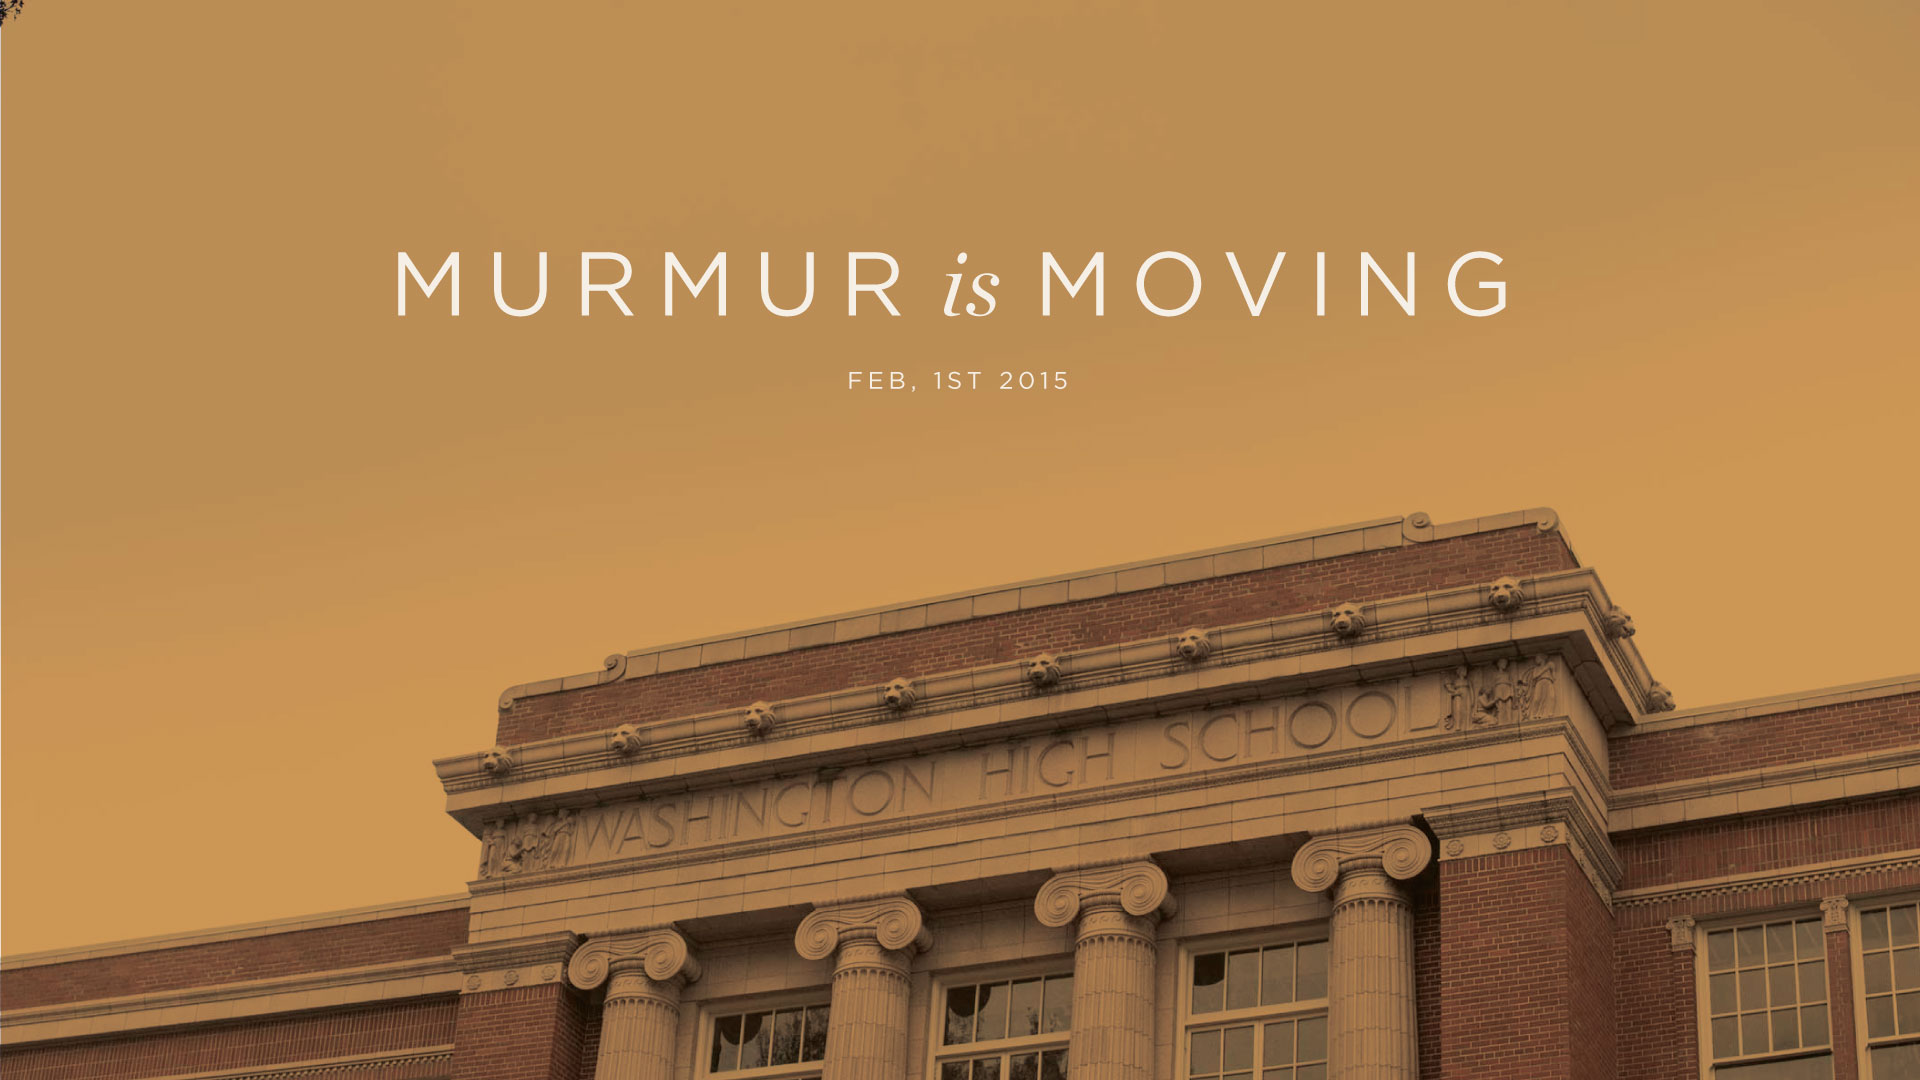 murmur-is-moving